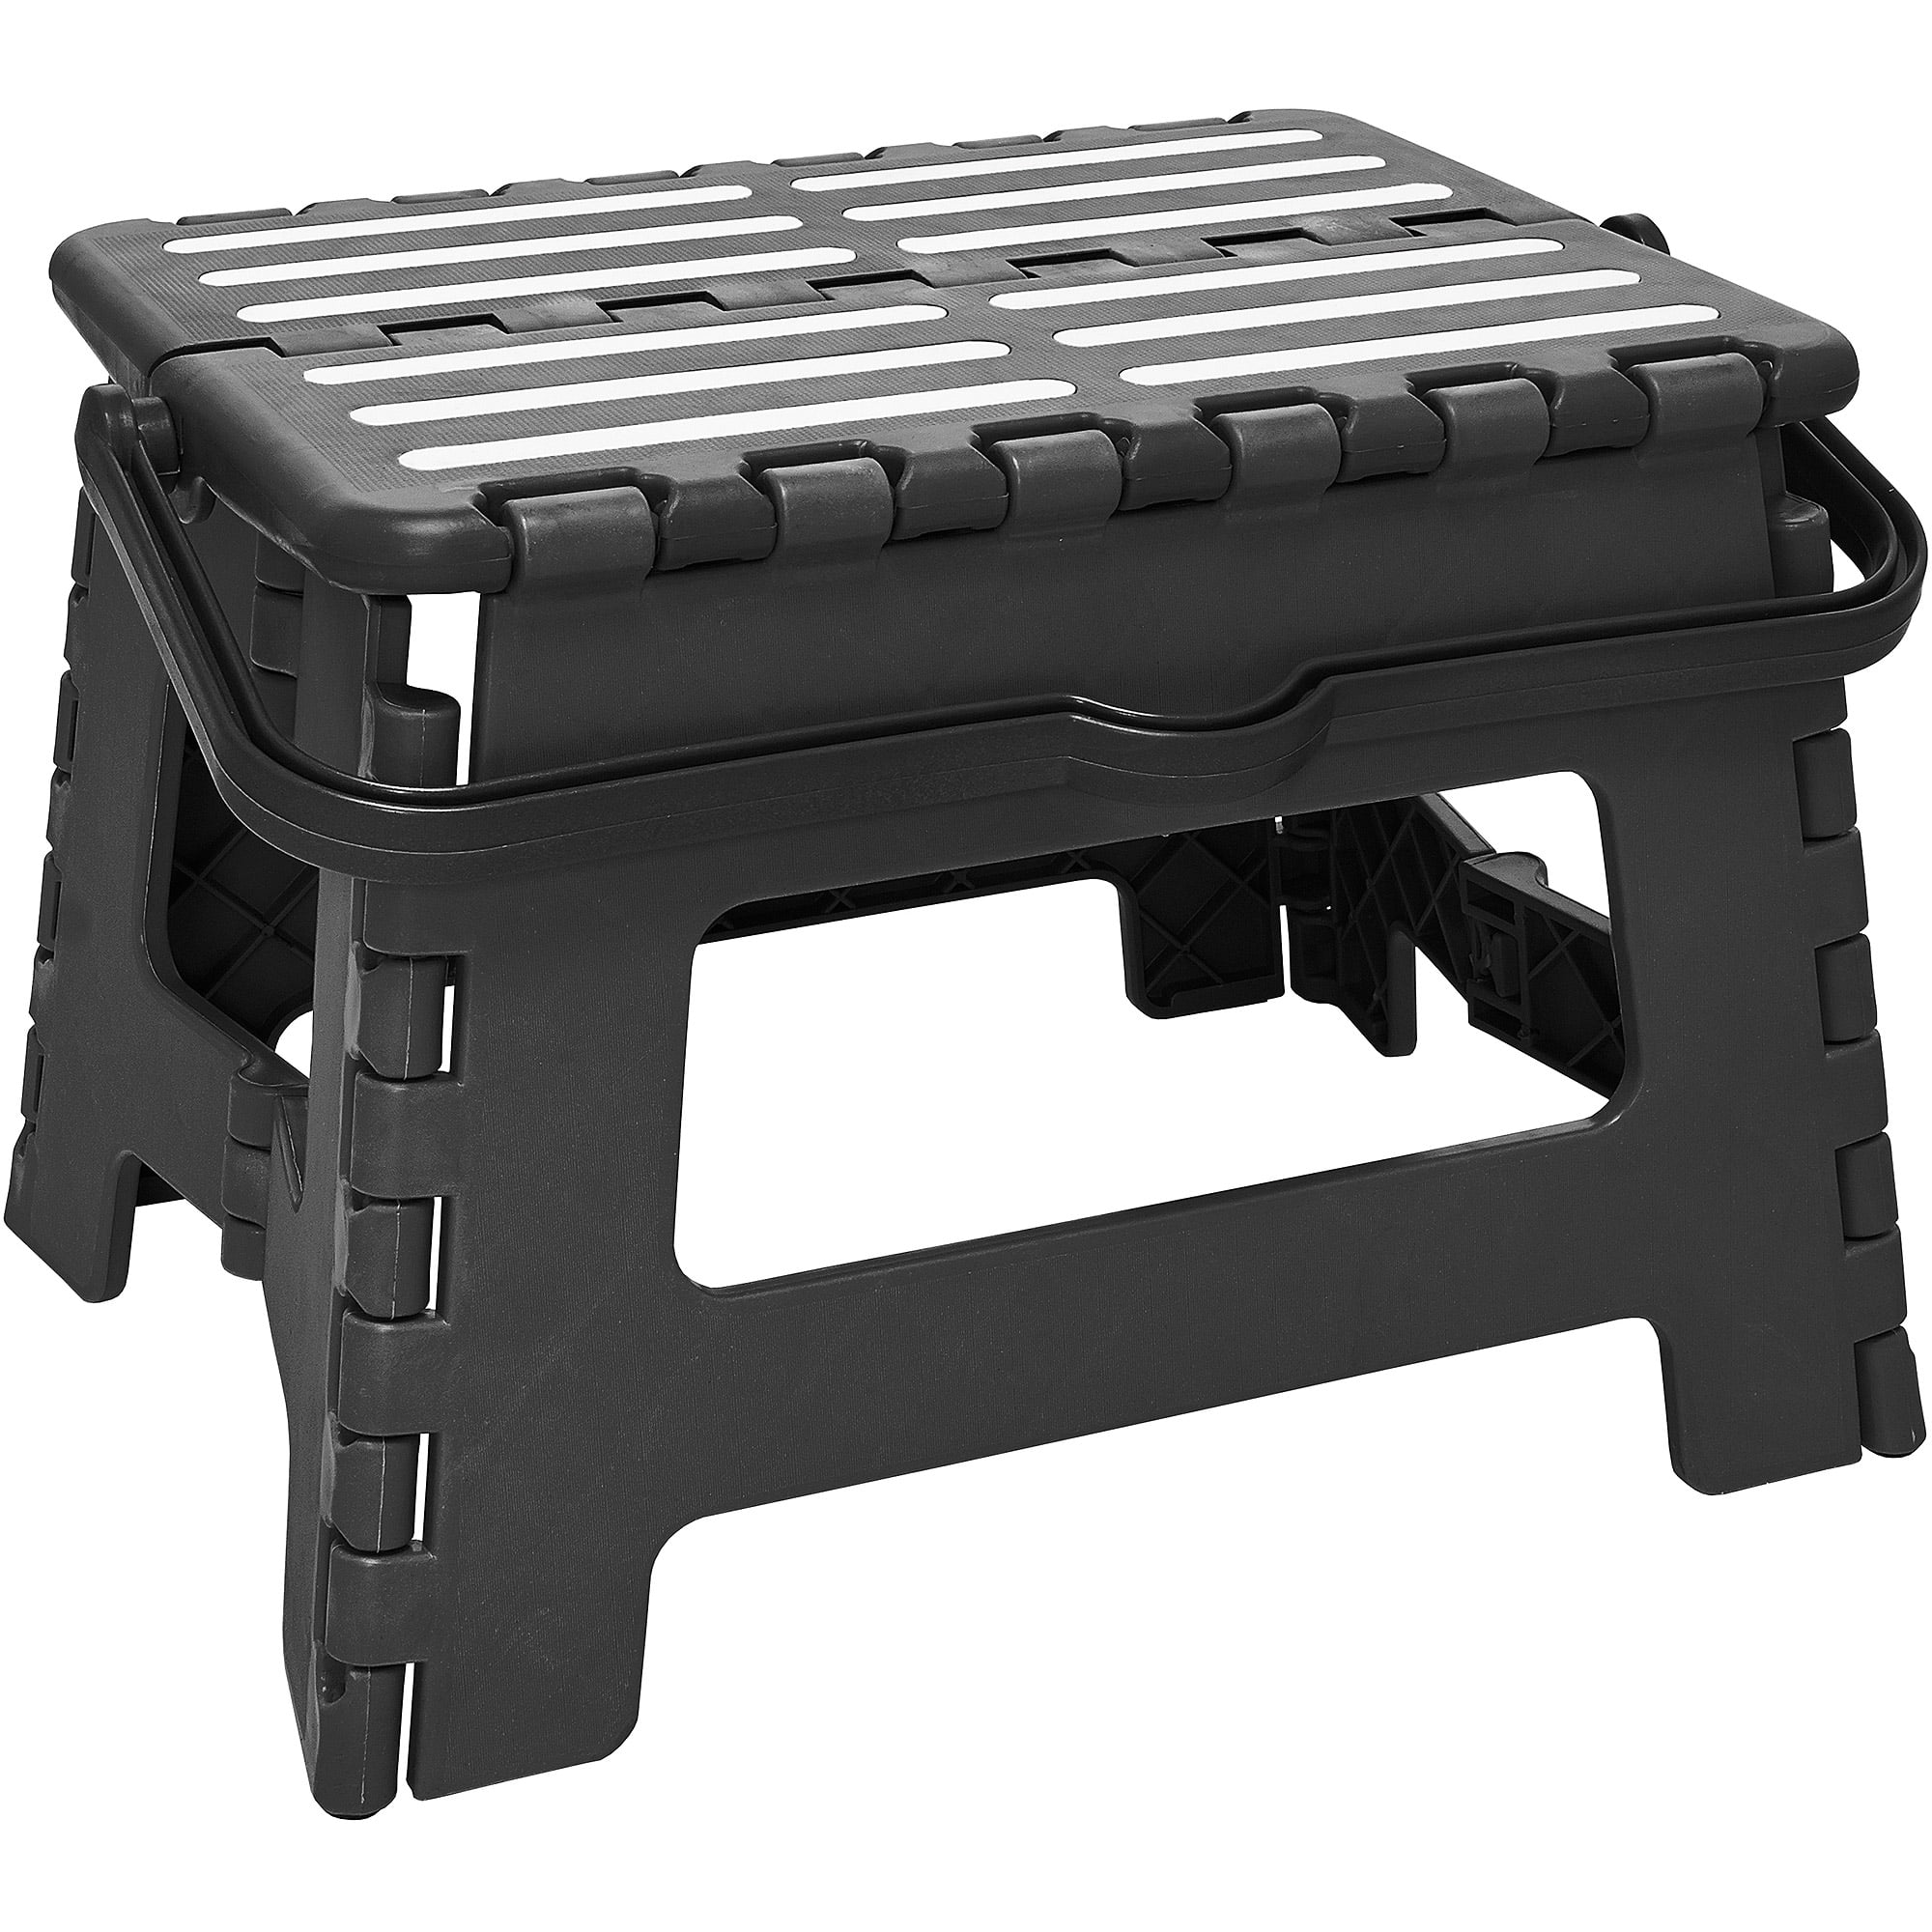 Simplify Striped Folding Step Stool with Handle. Product Variants Selector. Black  sc 1 st  Walmart : black plastic step stool - islam-shia.org